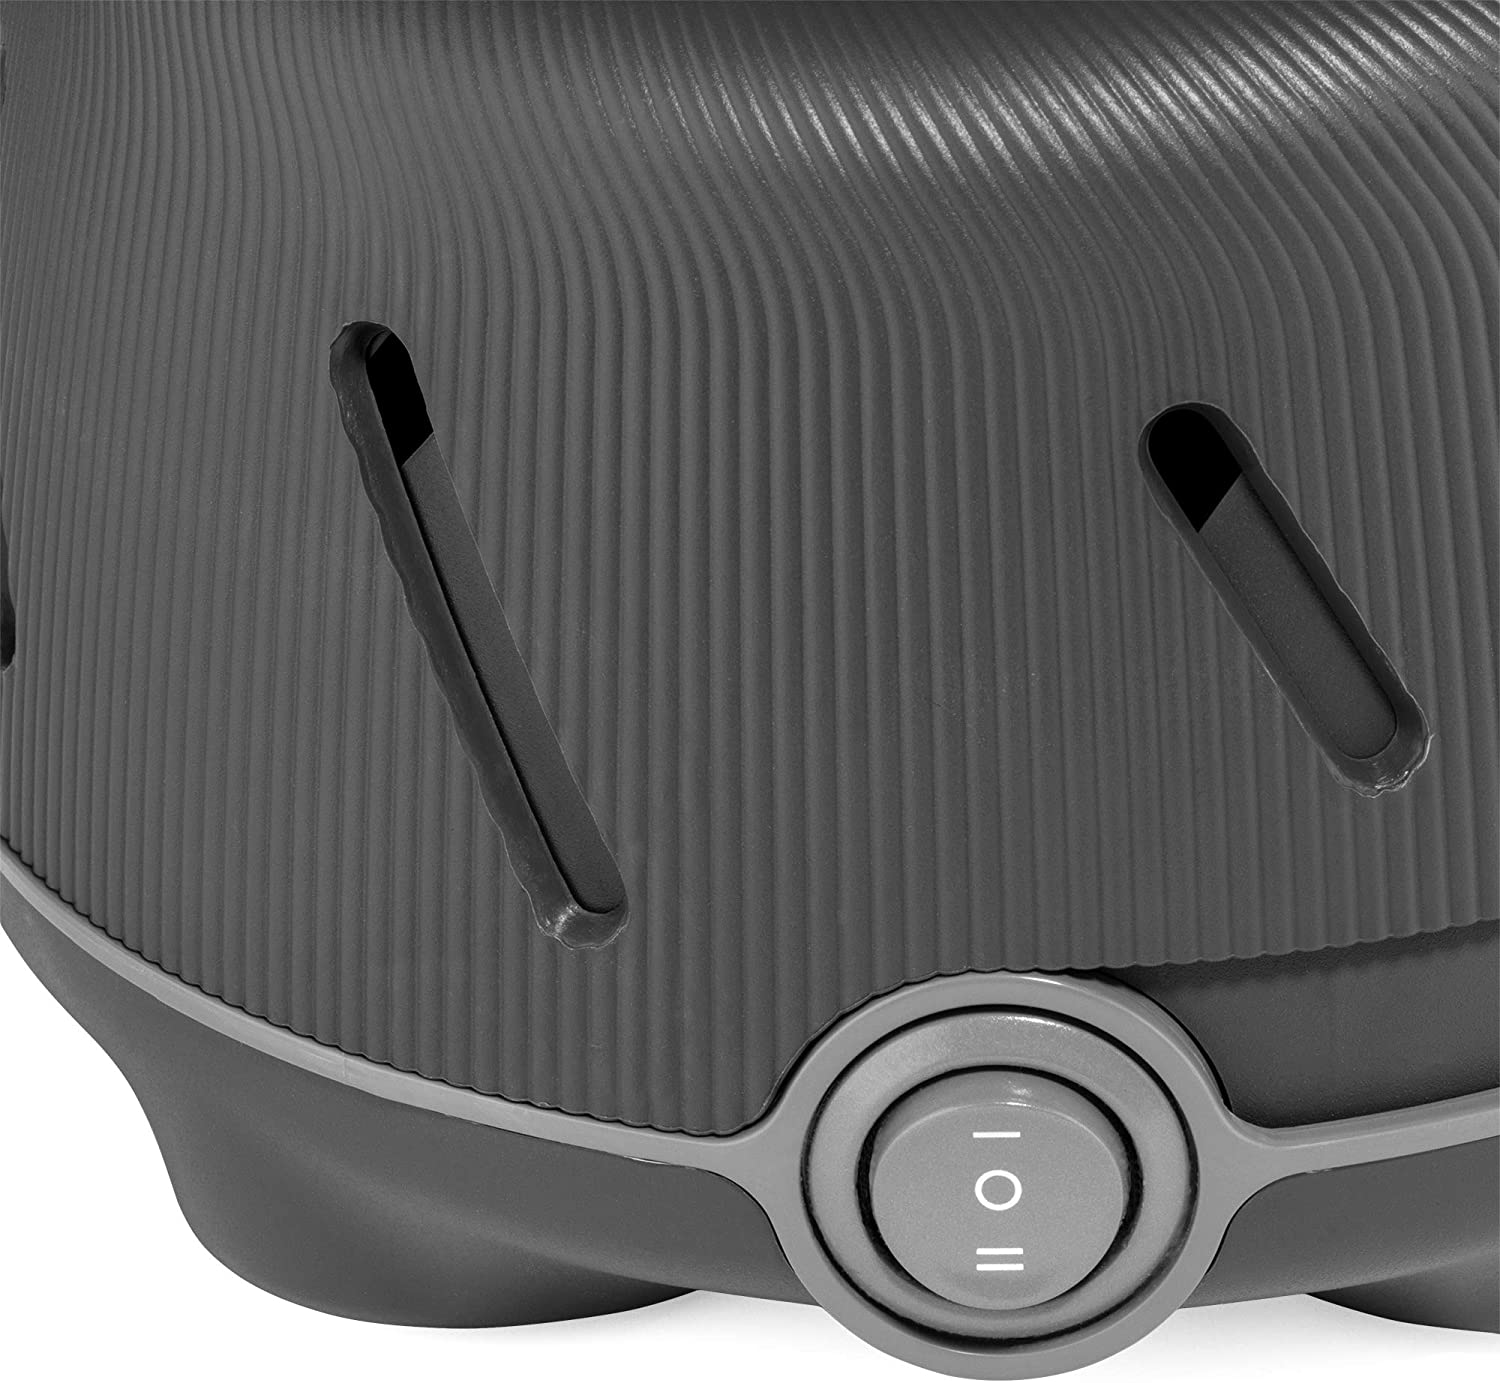 Marpac Dohm (Charcoal)   The Original White Noise Machine   Soothing Natural Sound from a Real Fan   Noise Cancelling   Sleep Therapy, Office Privacy, Travel   For Adults & Baby   101 Night Trial